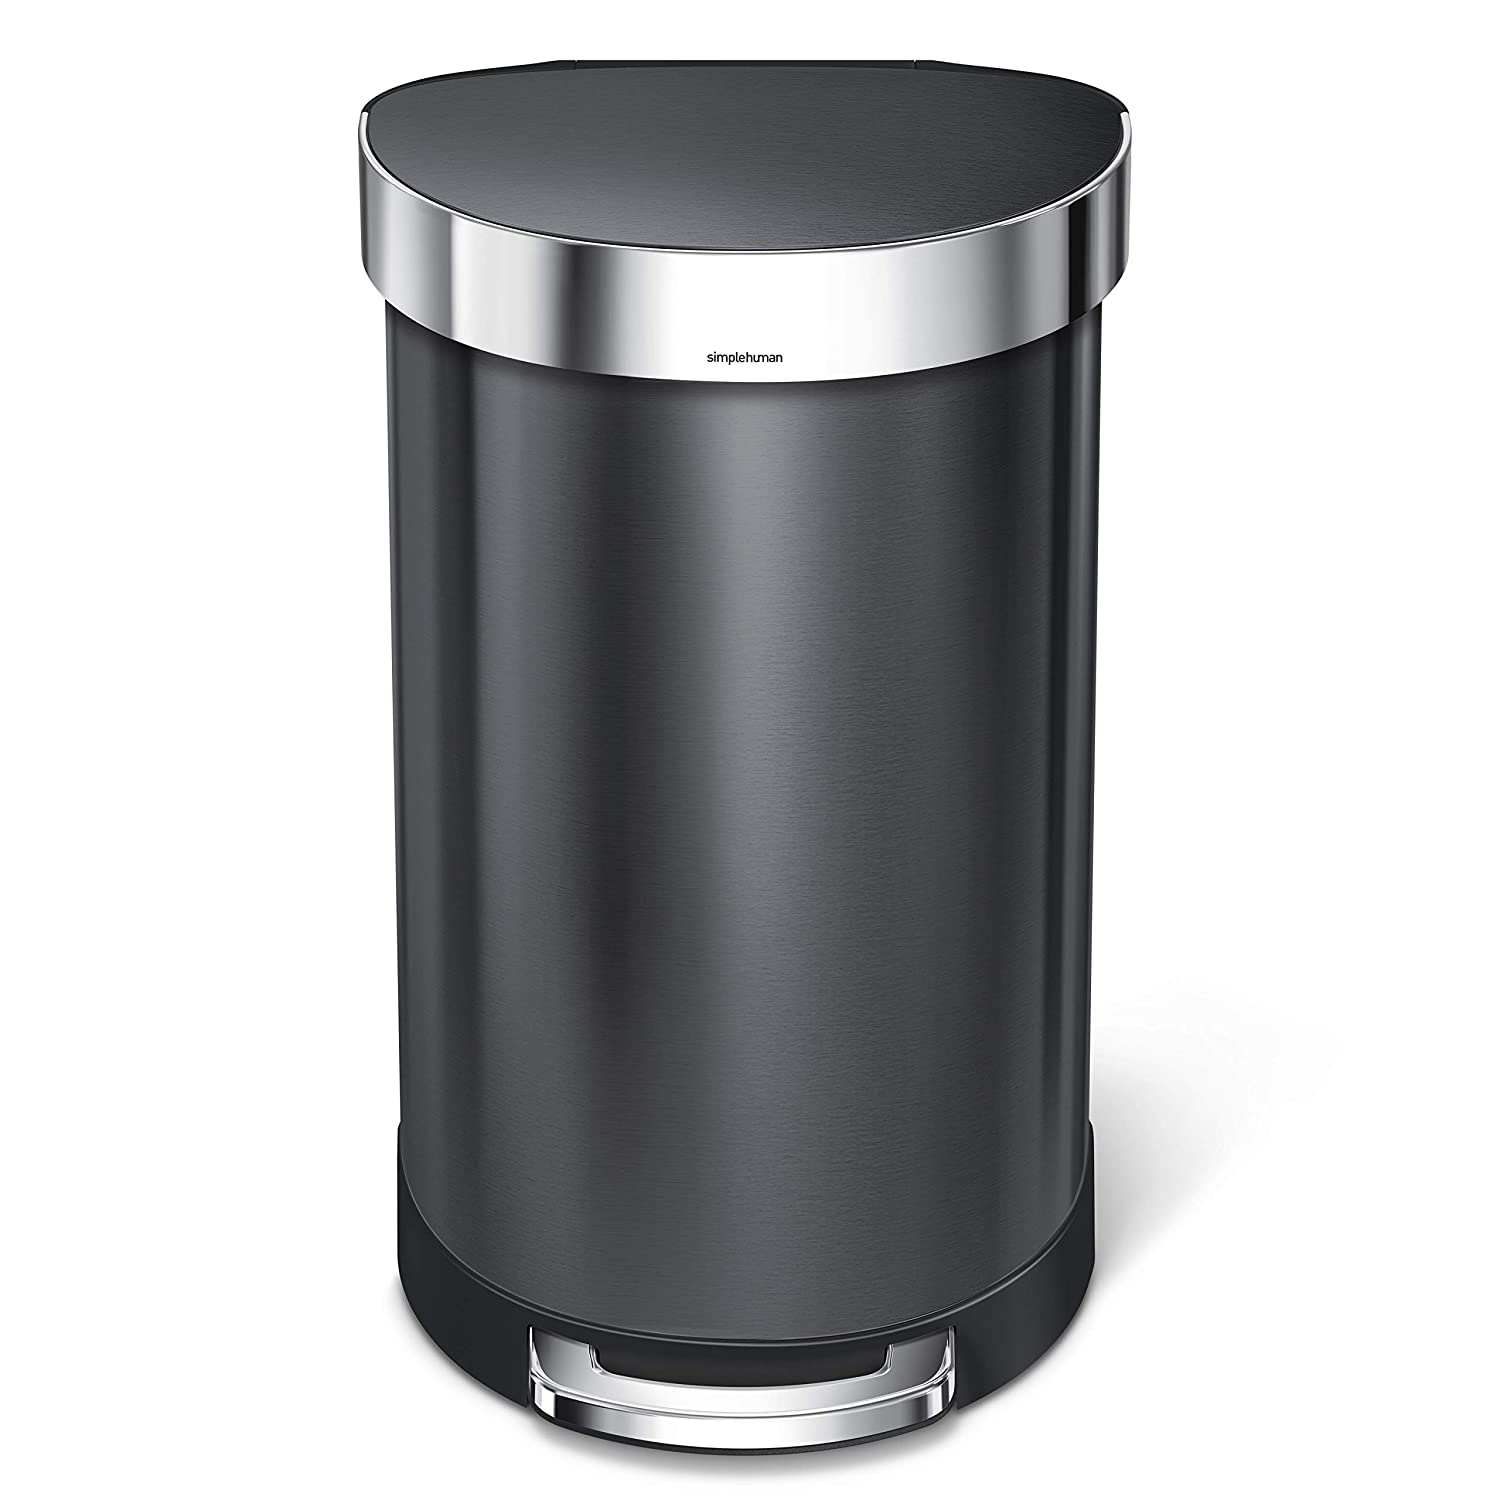 simplehuman 45 Liter / 12 Gallon Stainless Steel Semi-Round Kitchen Step Trash Can with Liner Rim, Black Stainless Steel